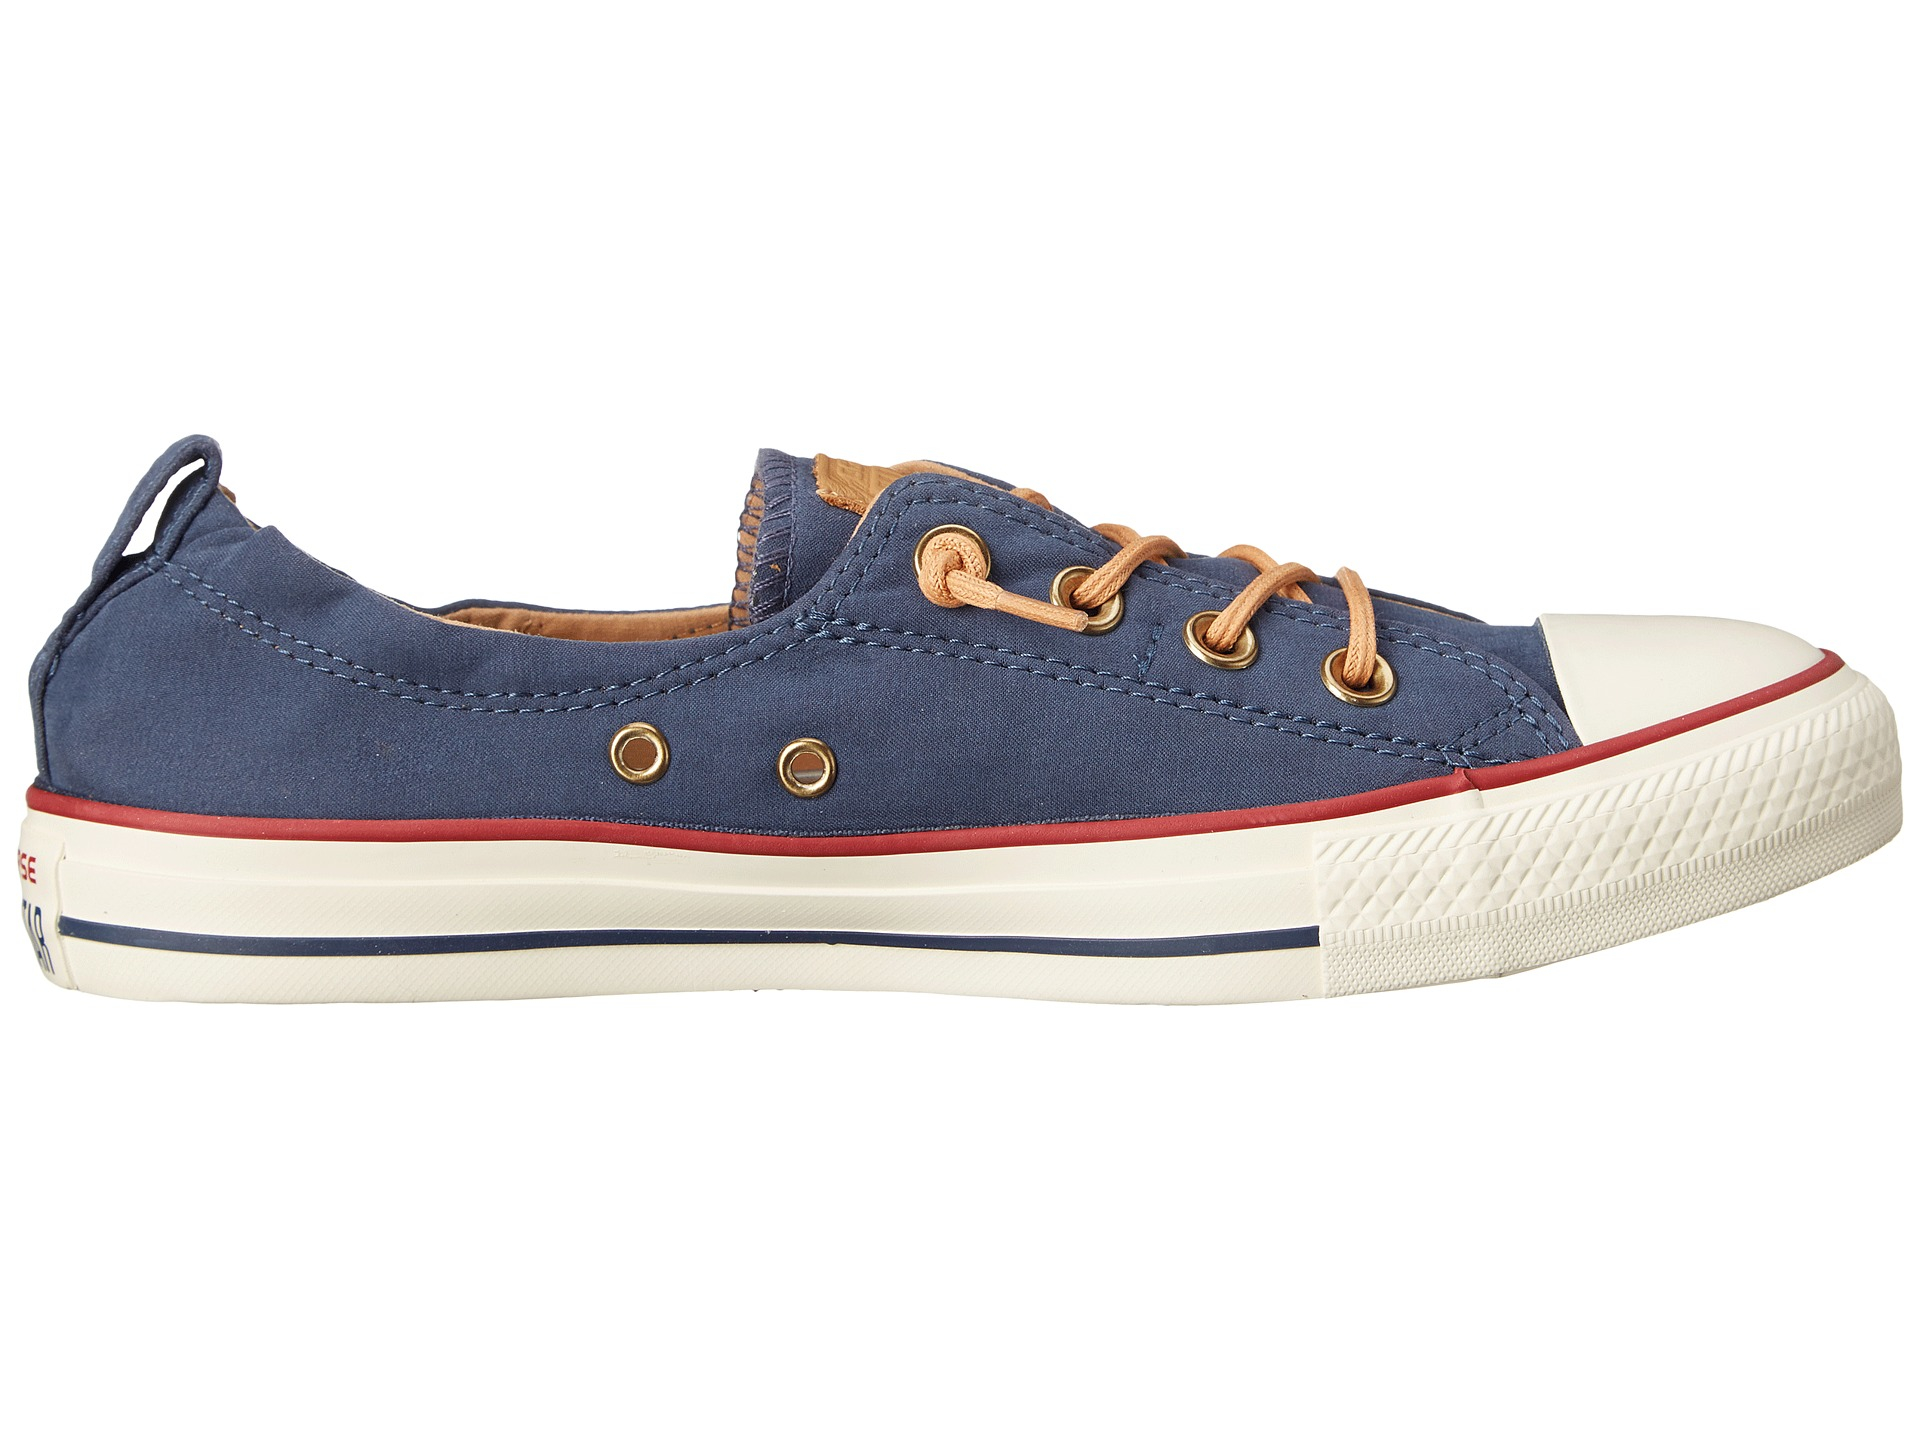 Lyst - Converse Chuck Taylor® All Star® Shoreline Peached Canvas in Blue 98d159d62